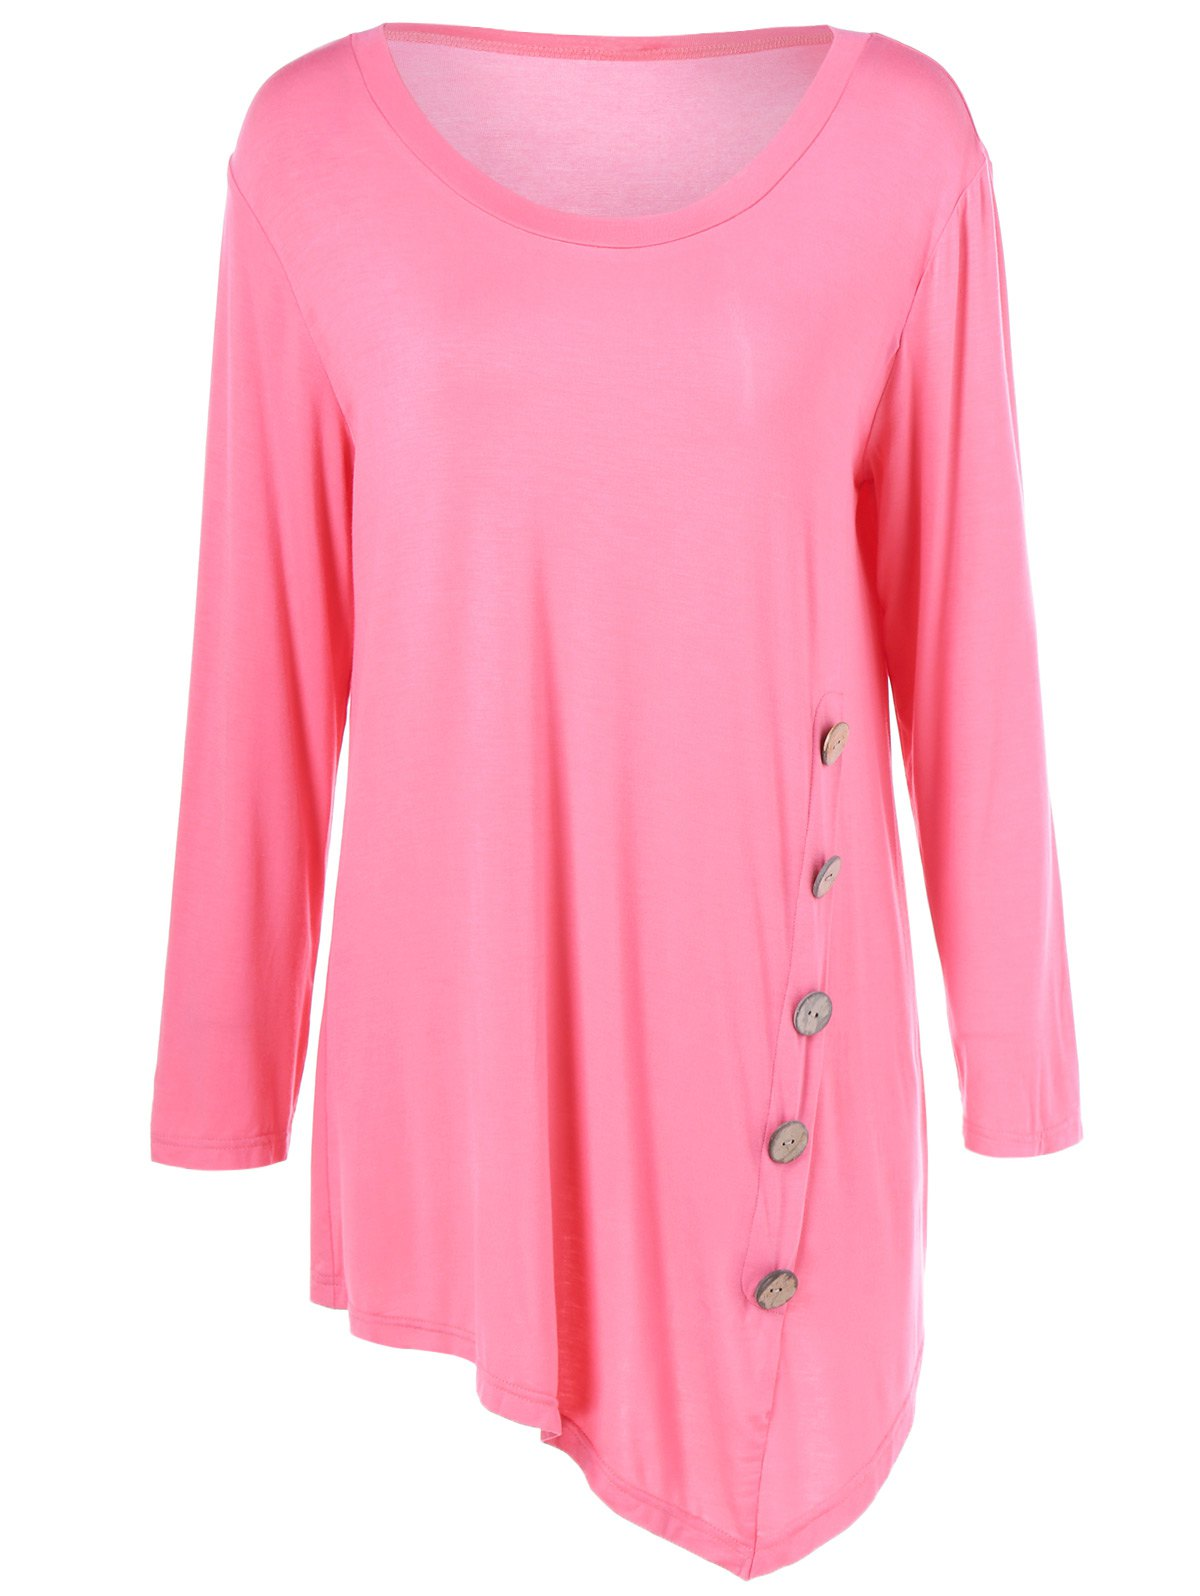 Plus Size Inclined Buttoned Blouse от Rosegal.com INT